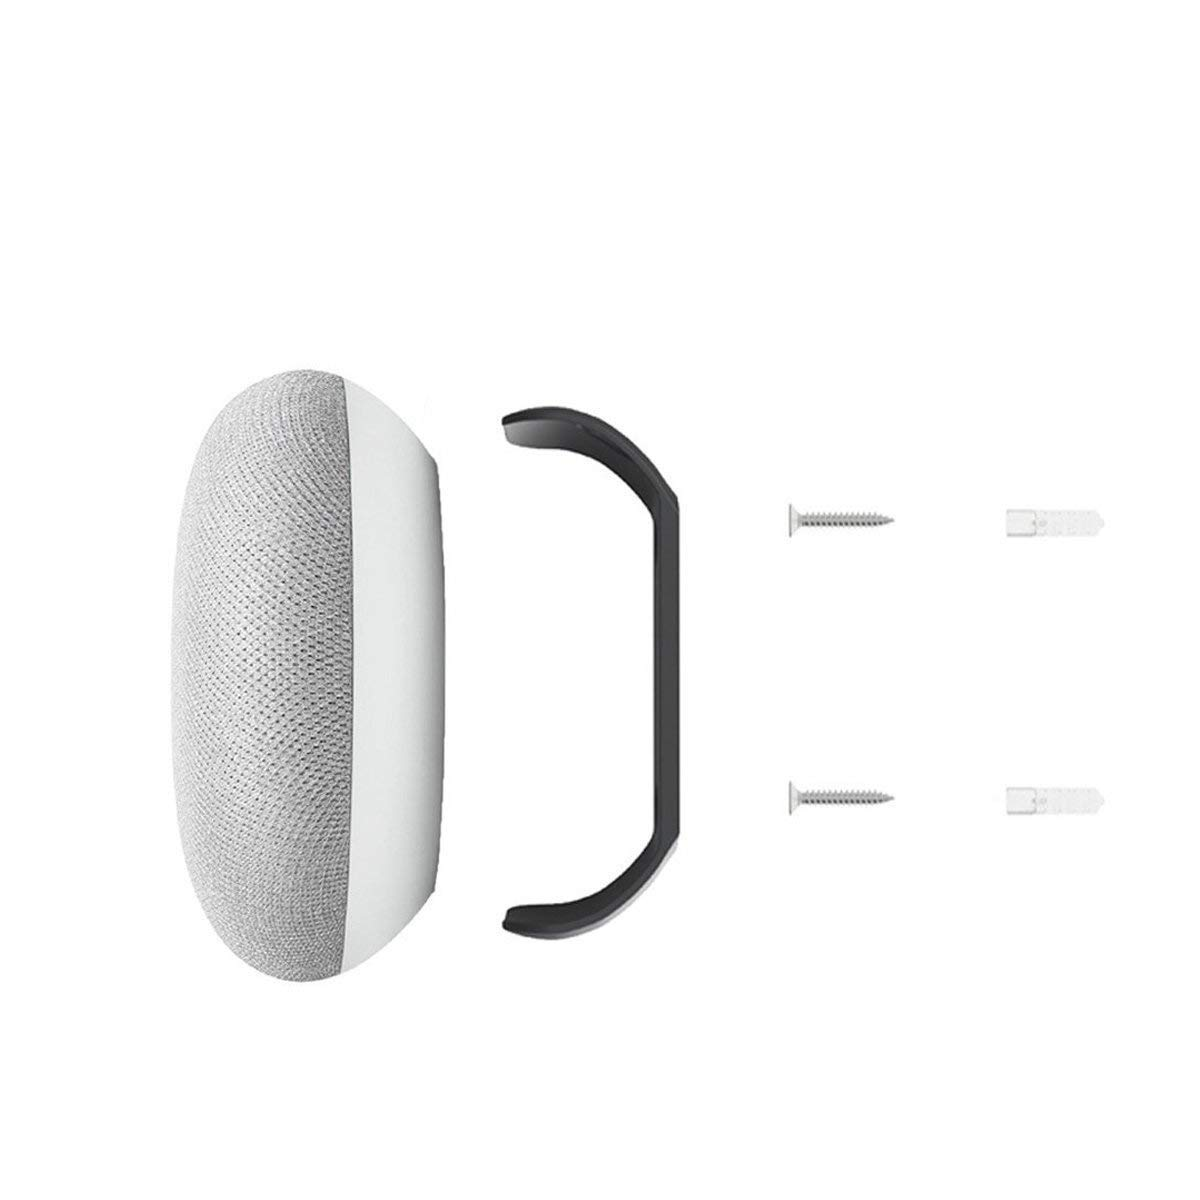 Fstop Labs Wall Mount Holder Stand for Google Home Mini Round Speaker Accessories (Black) 2 Pack